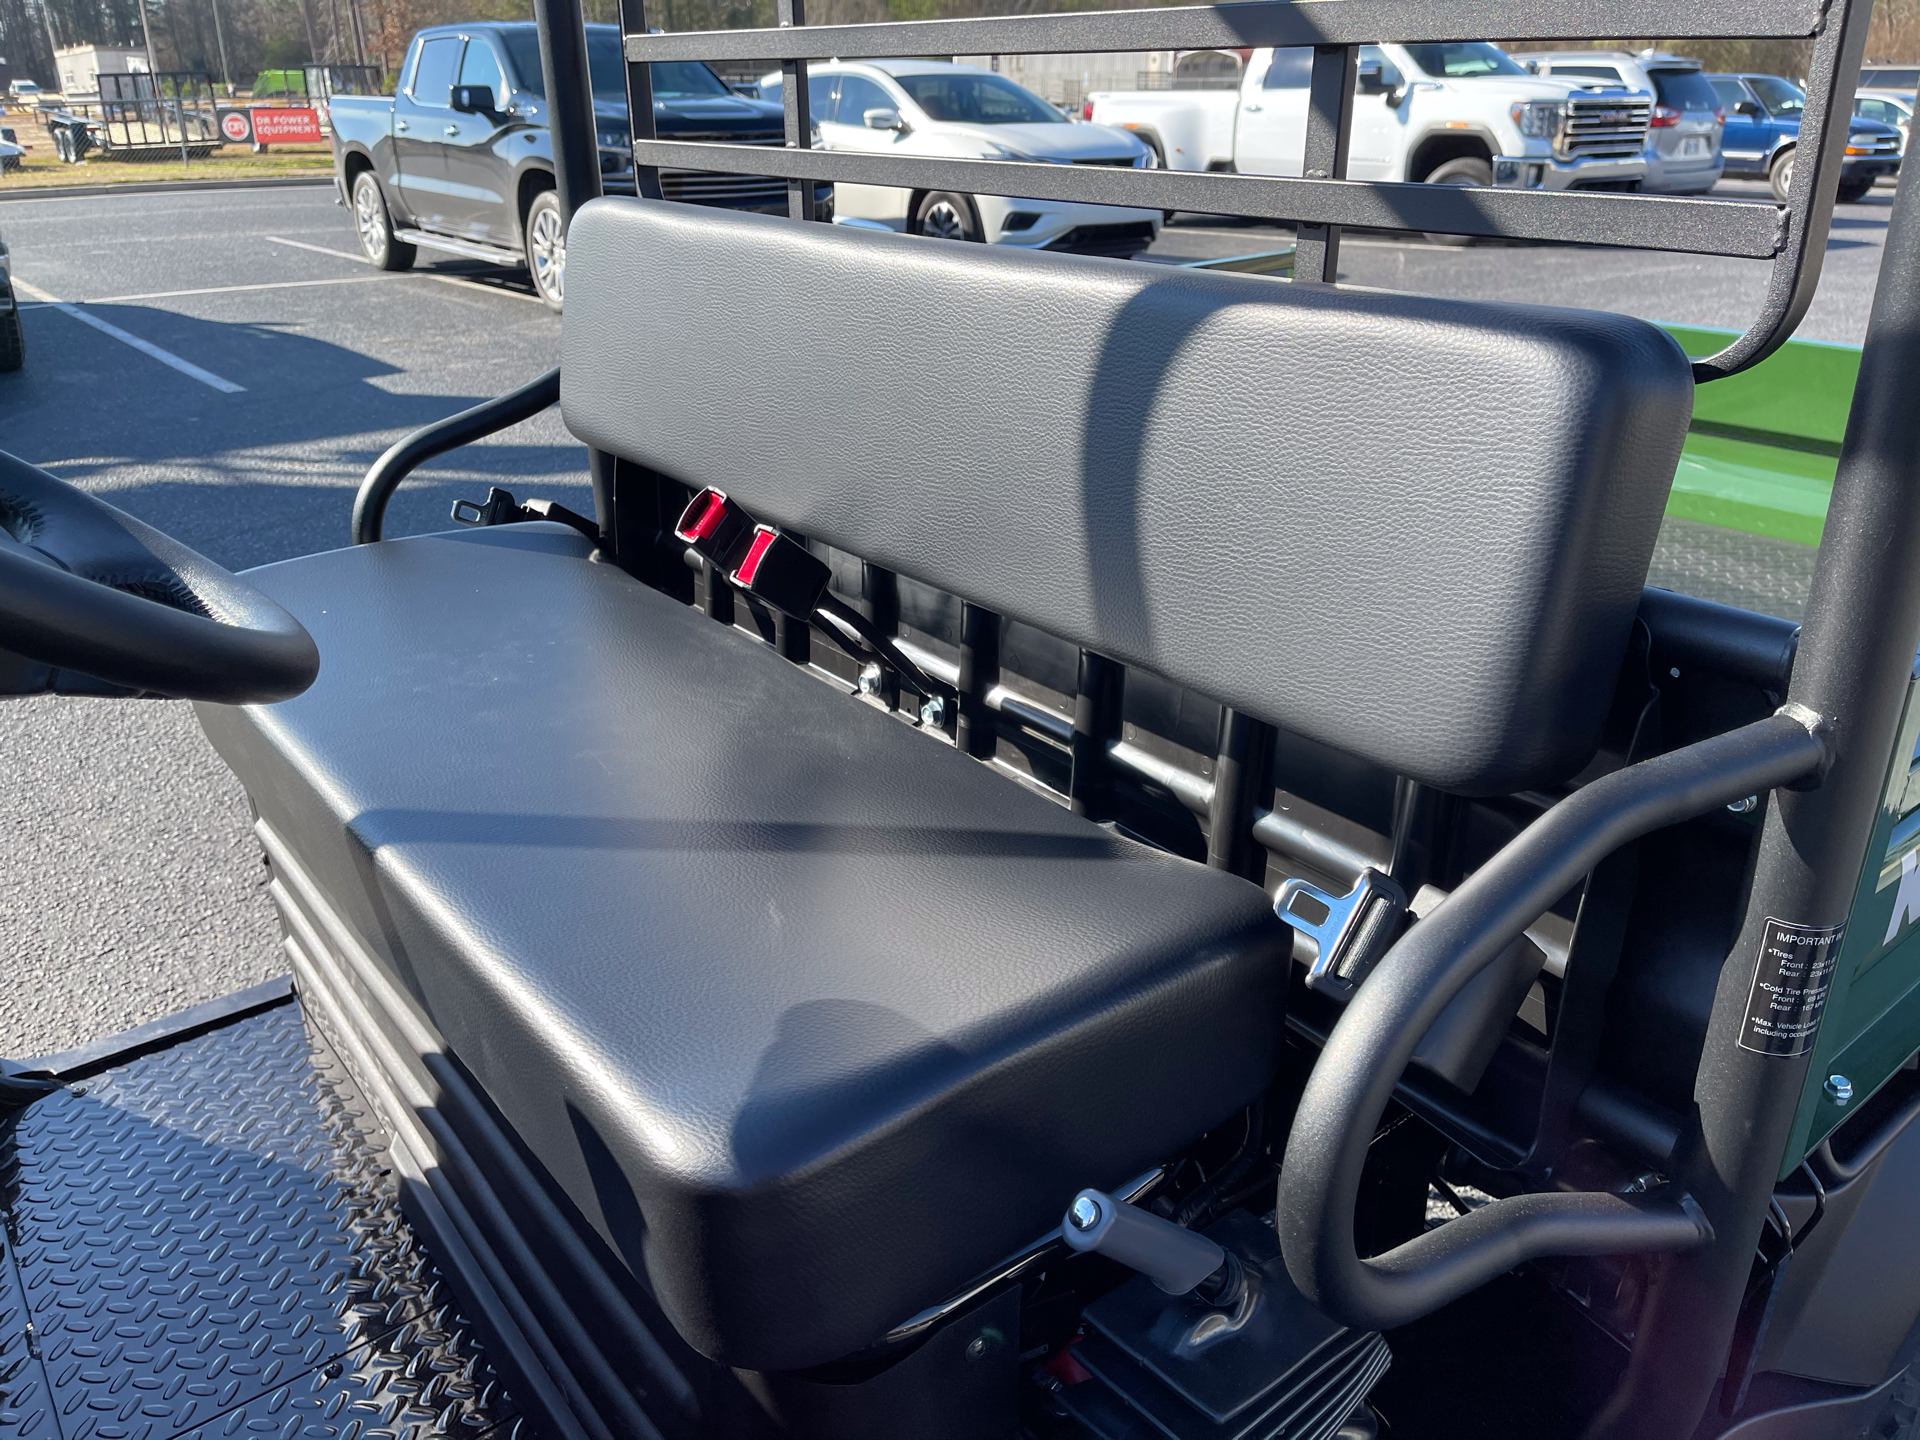 2021 Kawasaki Mule 4010 4x4 in Greenville, North Carolina - Photo 13